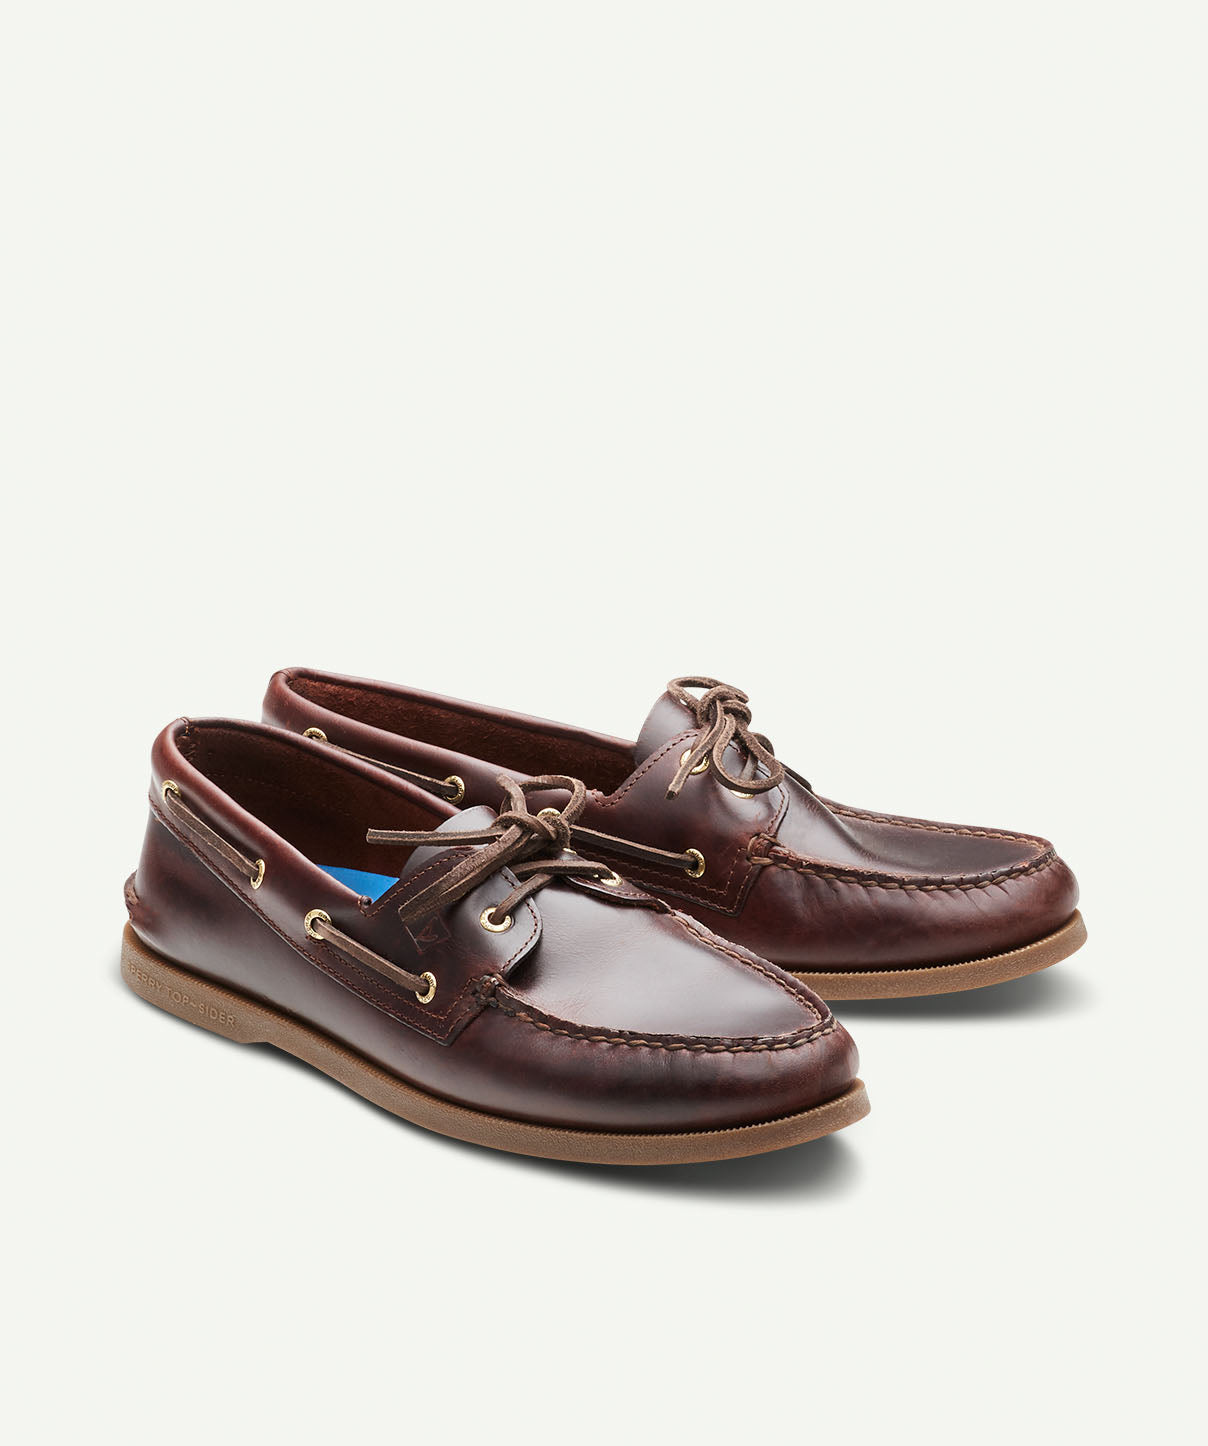 Sperry Boat Shoes - Amaretto   Shoes